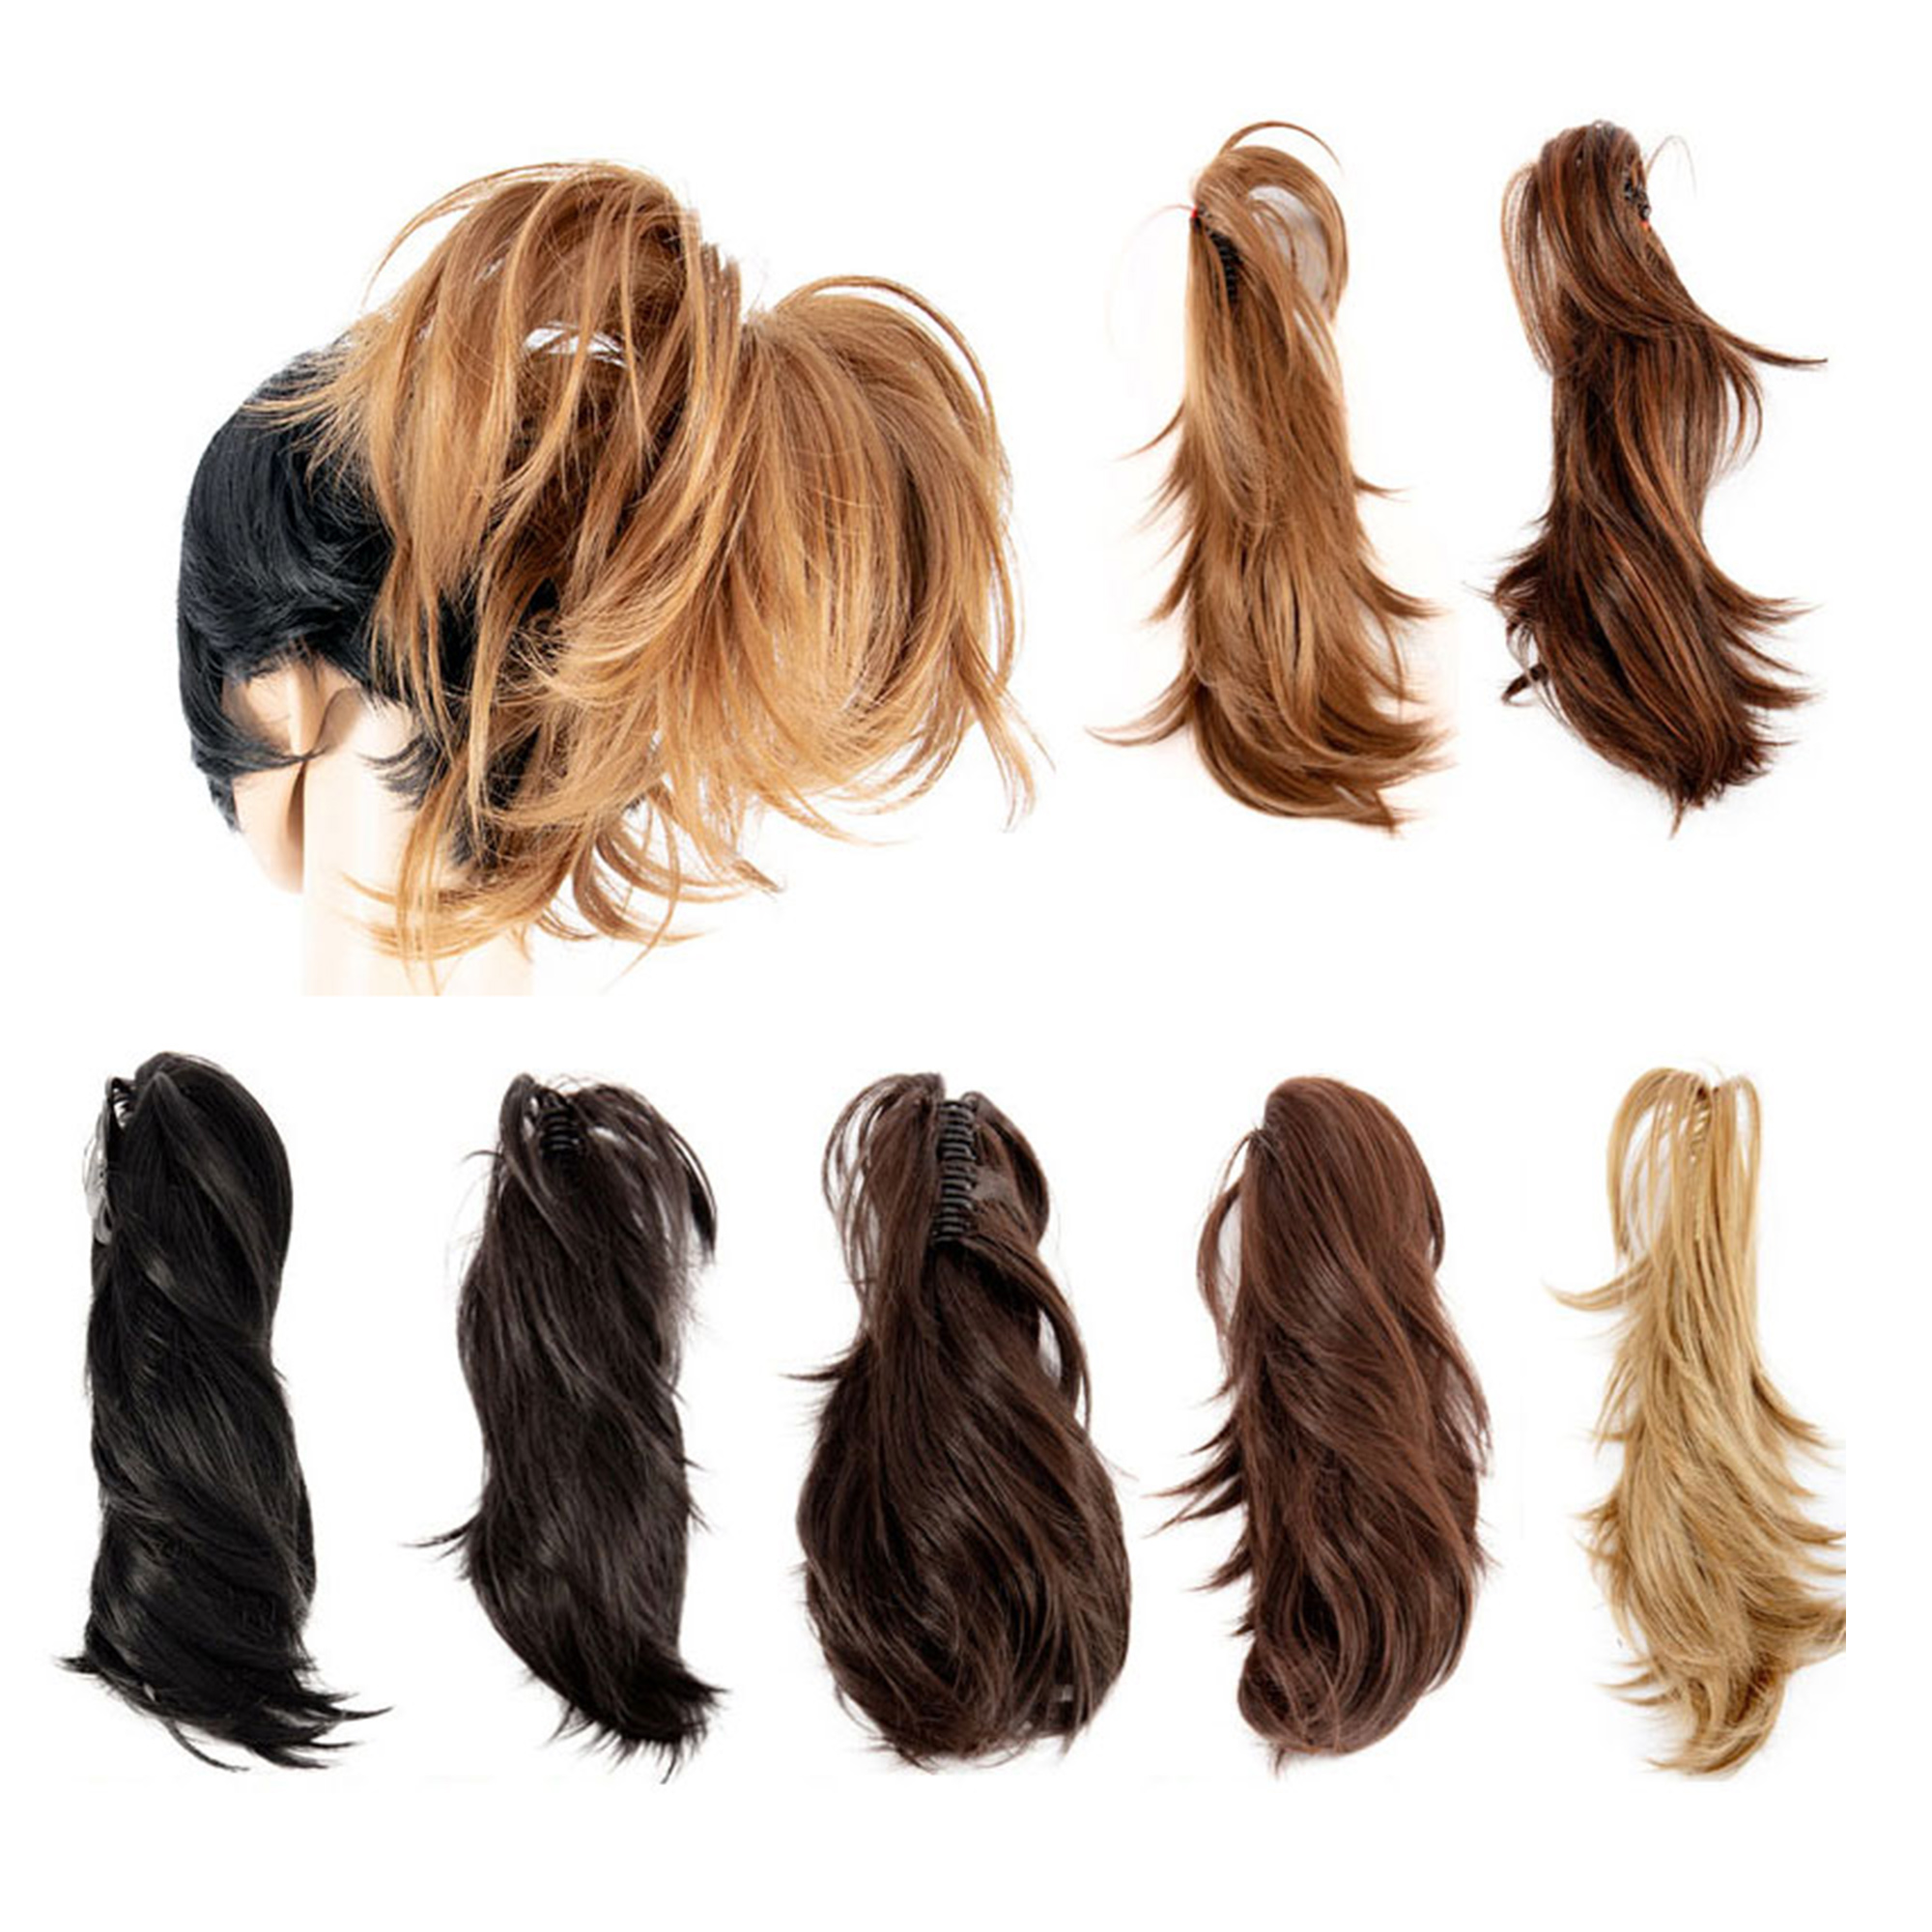 14 Inch Adjustable Messy Style Ponytail Hair Extension with Jaw Claw Synthetic Hair-Piece